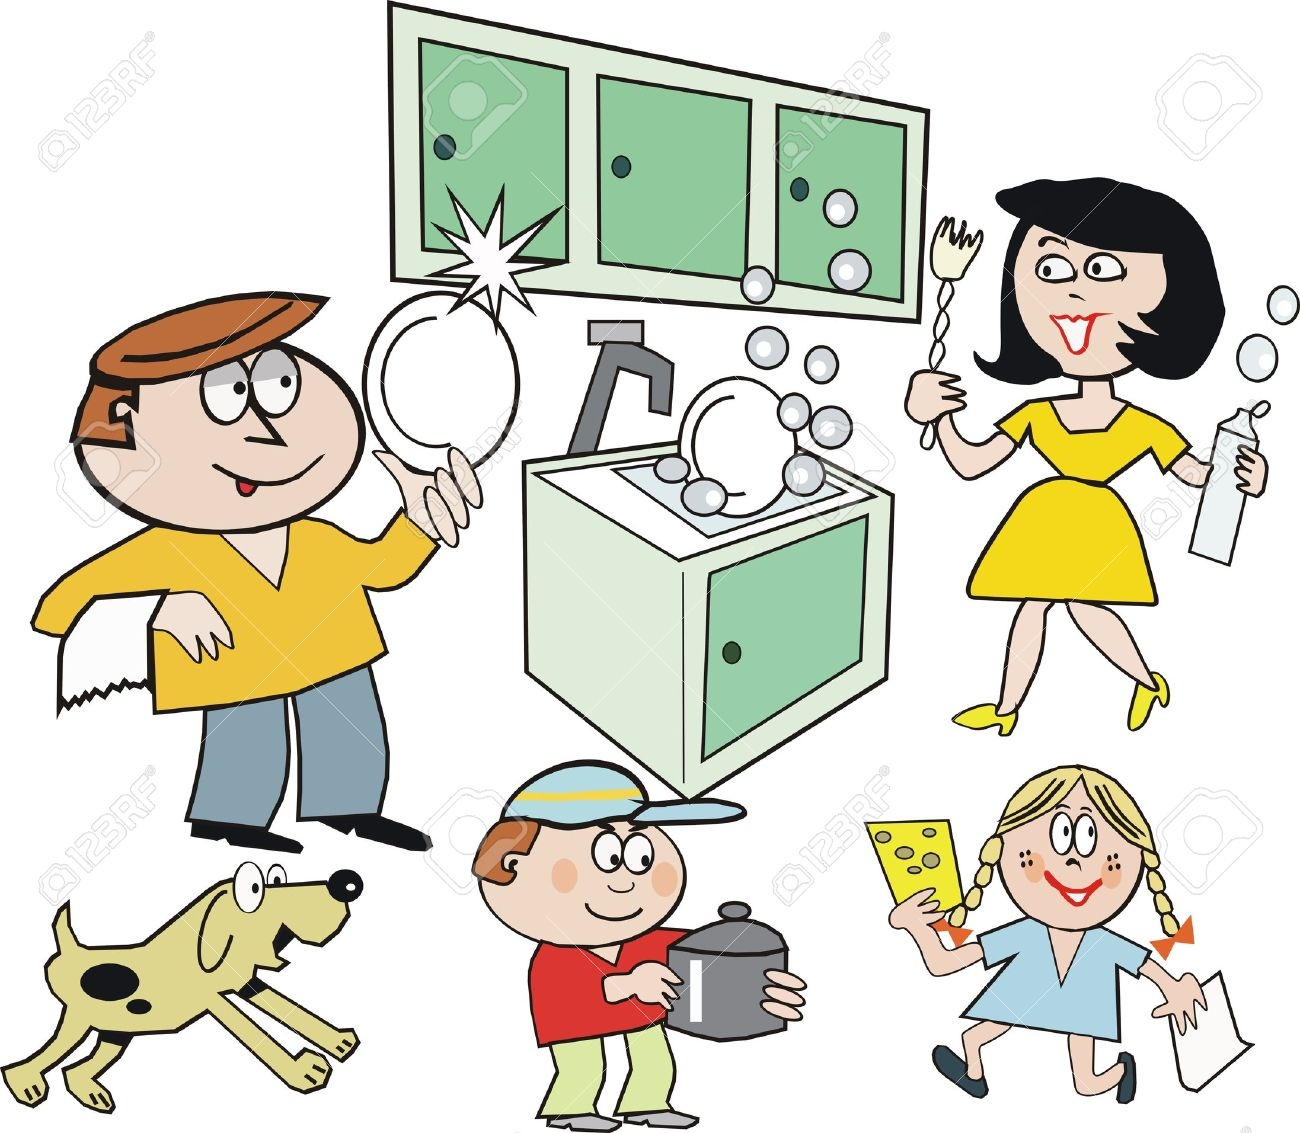 Clipart of household chores.